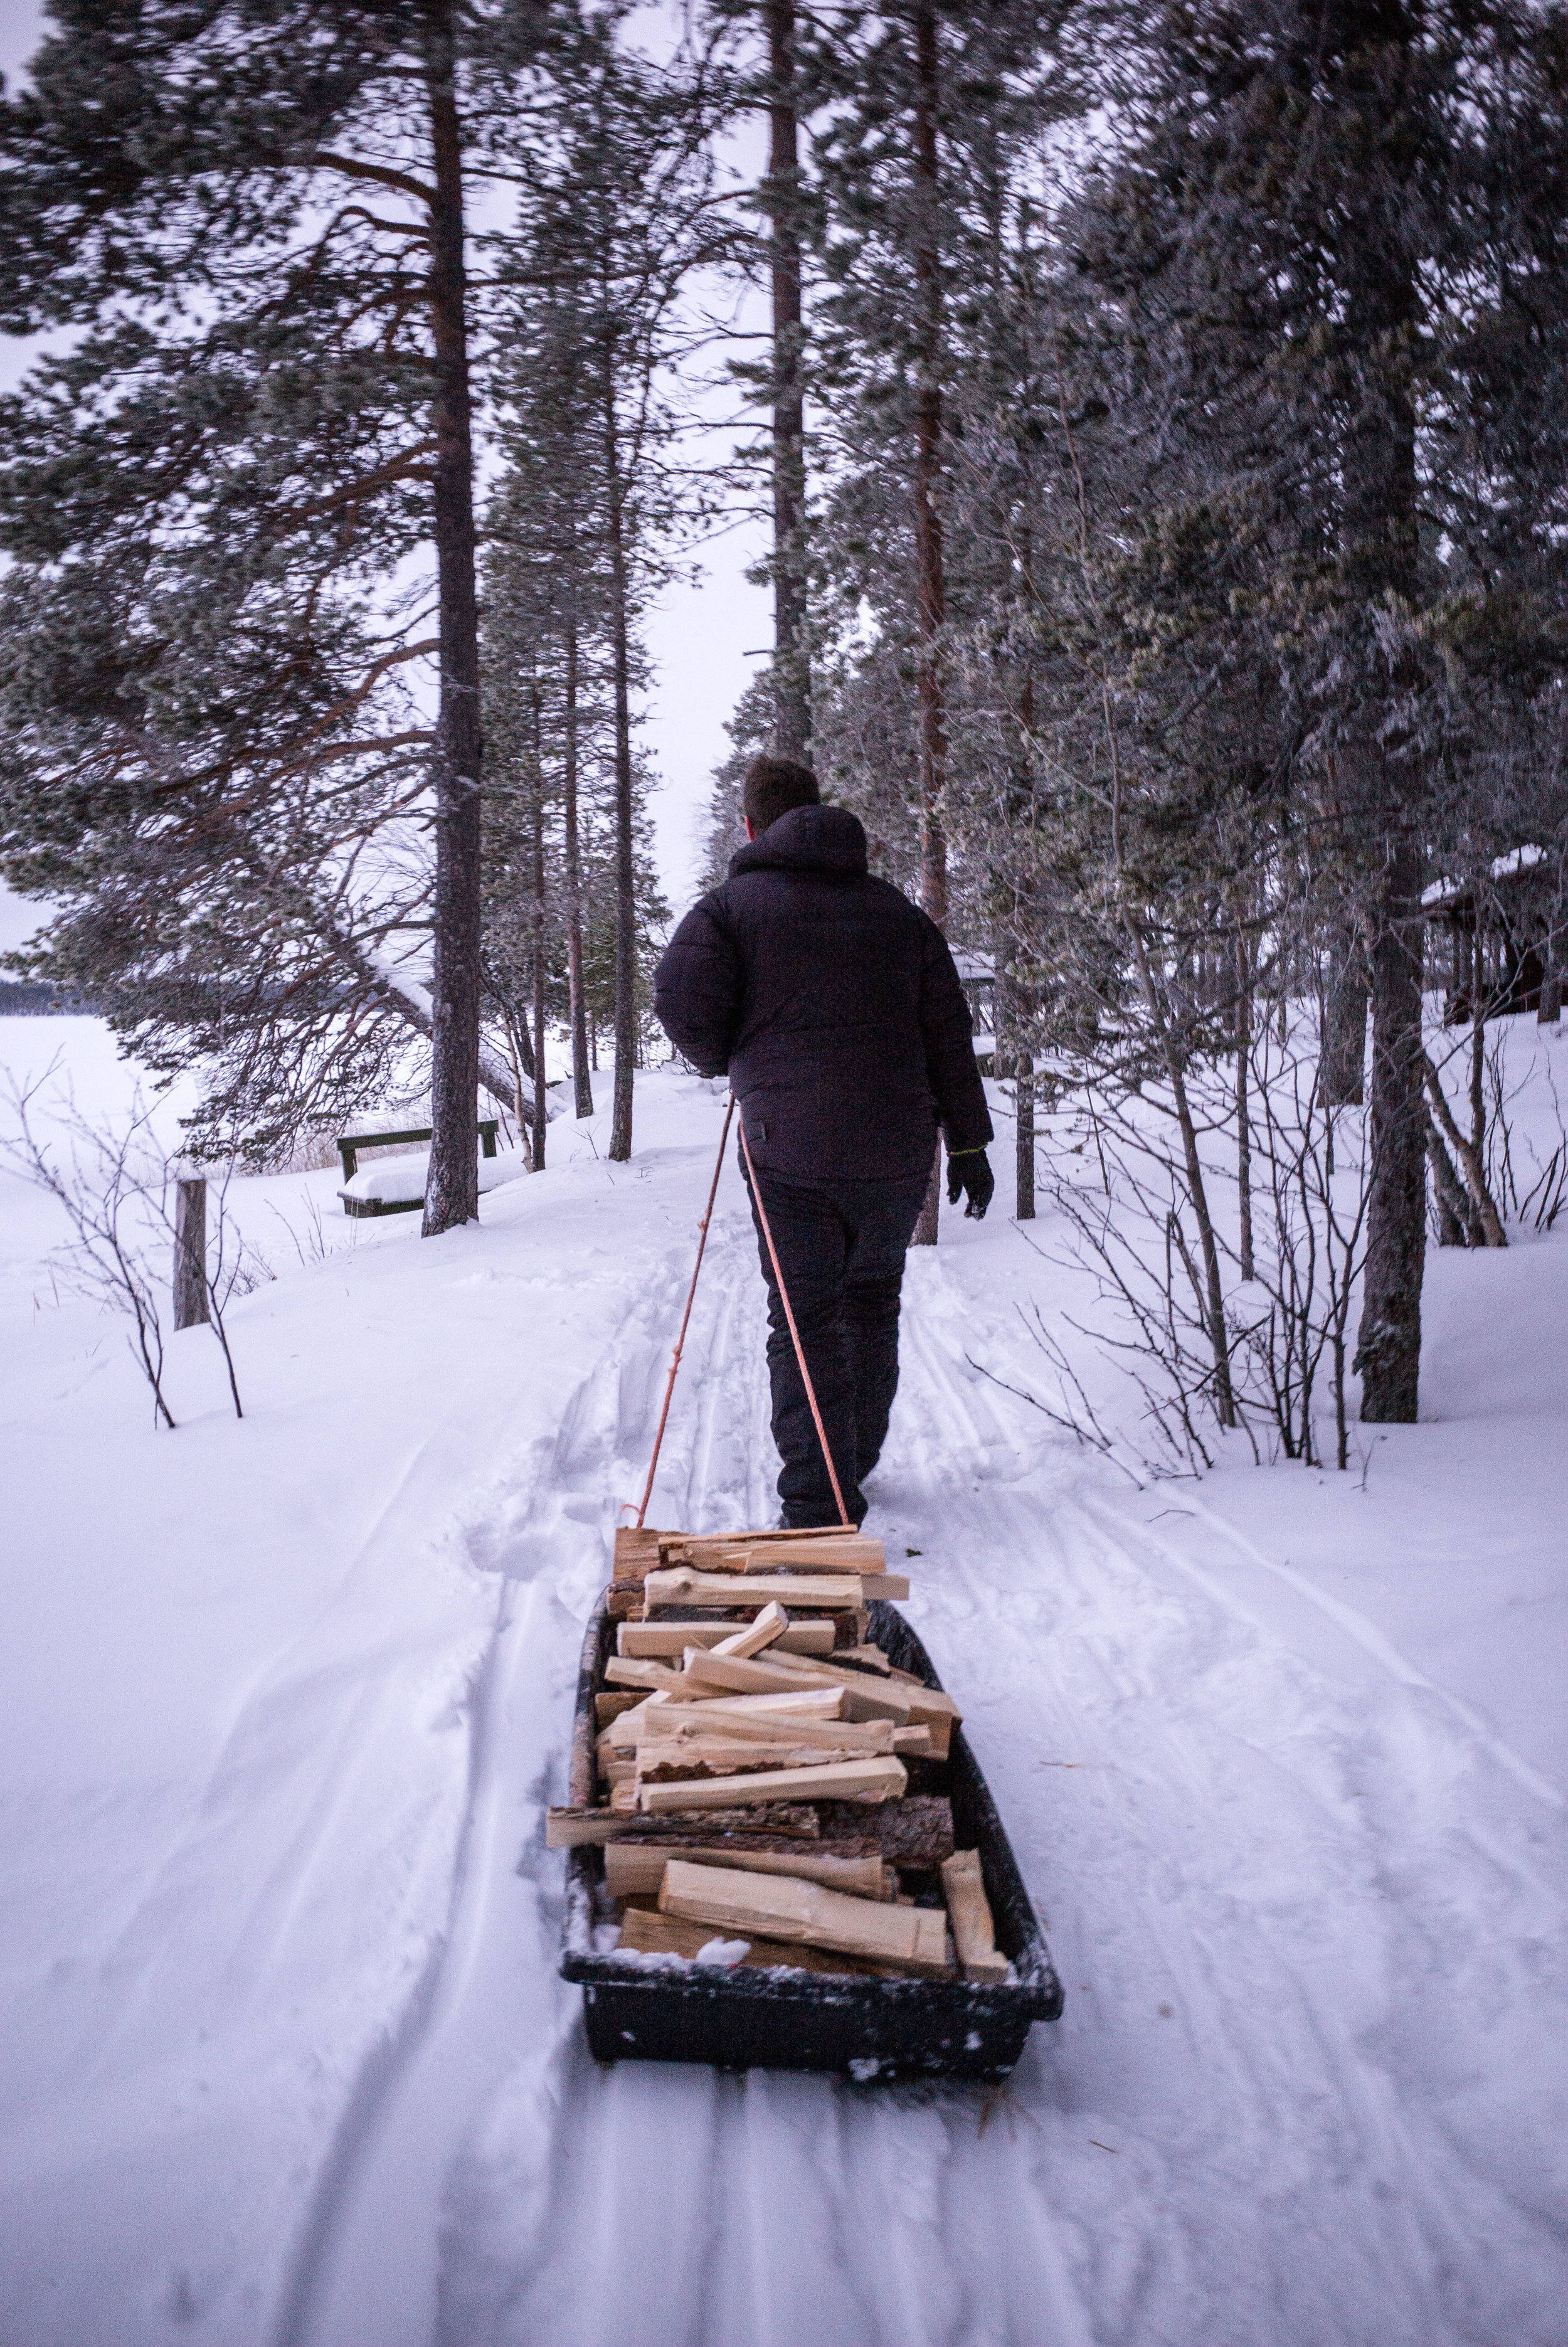 Firewood - one of the many chores